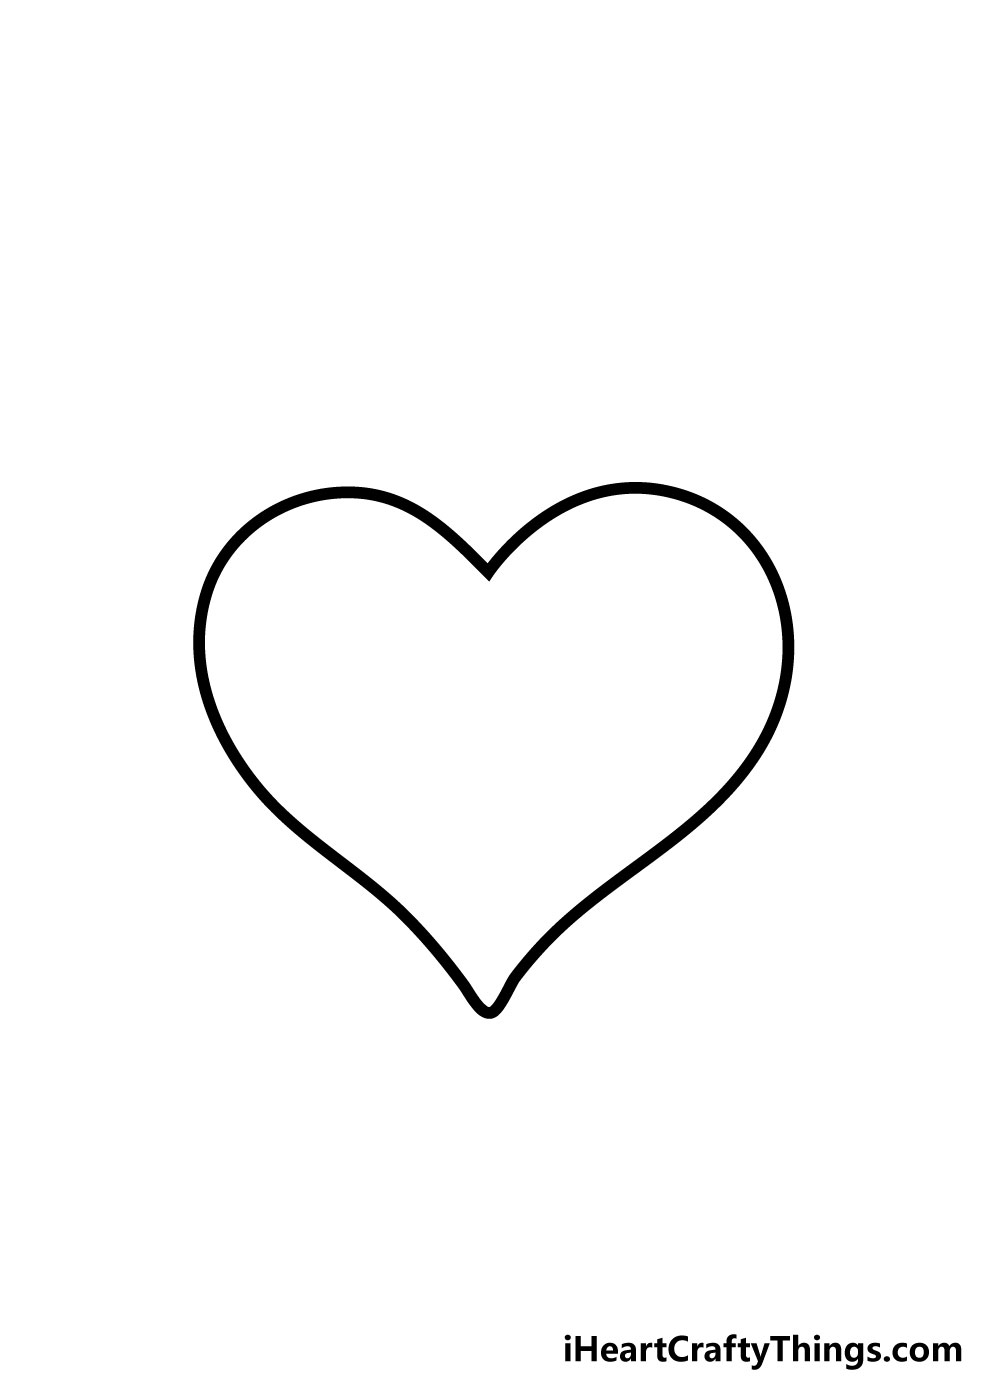 heart drawing step 5